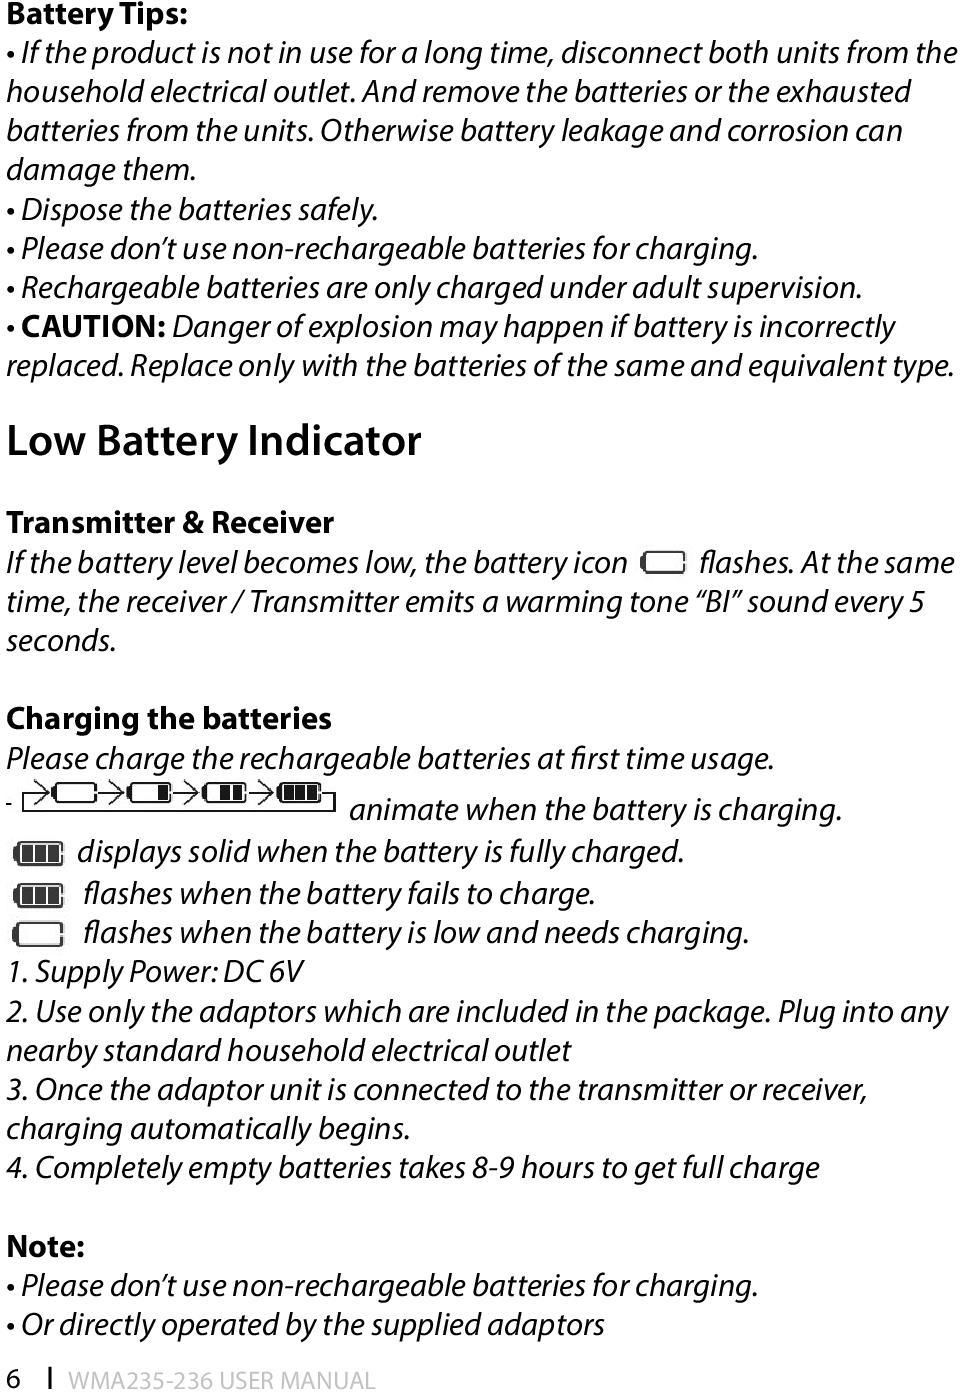 Rechargeable batteries are only charged under adult supervision. CAUTION: Danger of explosion may happen if battery is incorrectly replaced.